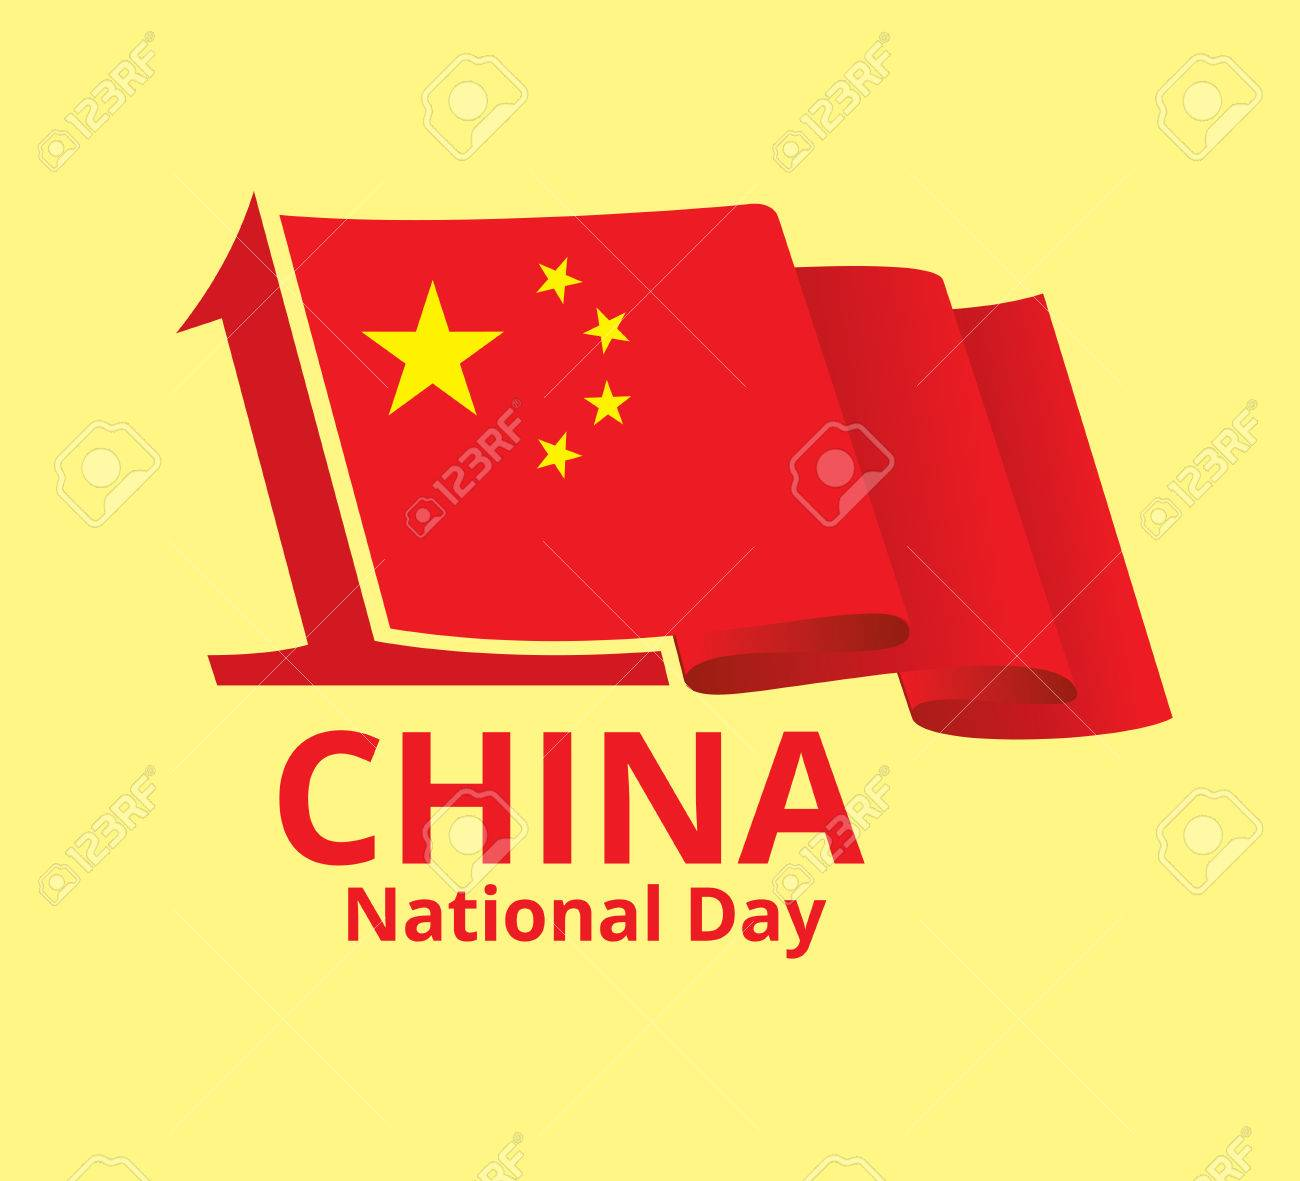 China National Day Design For Greeting Card Fluttering Chinese